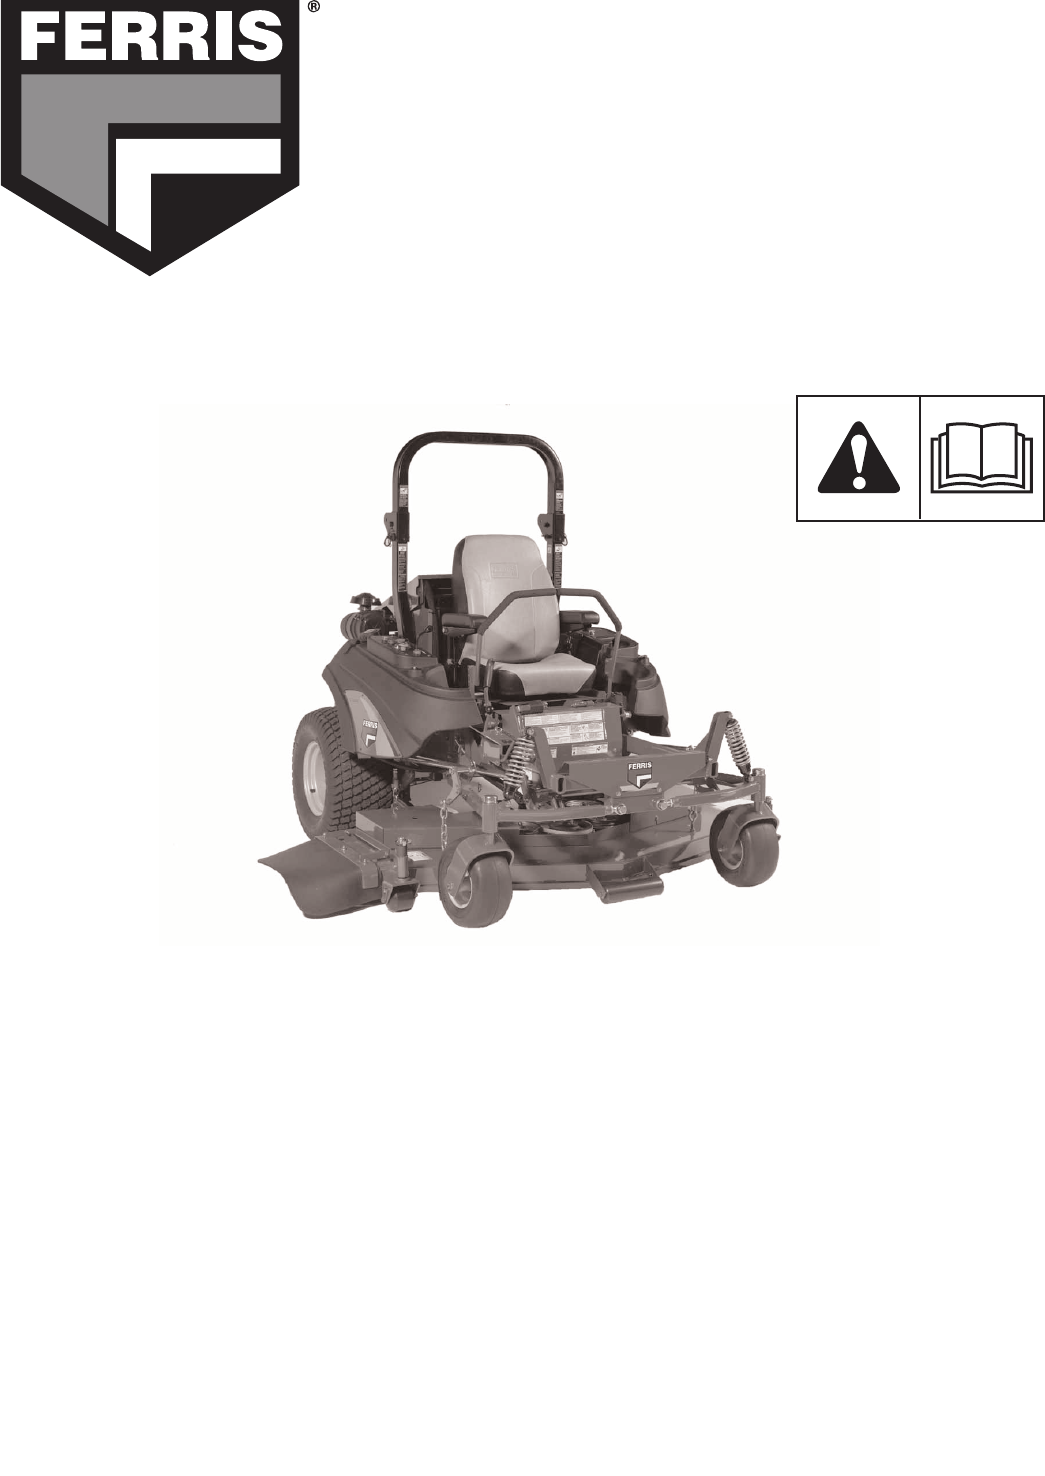 briggs and stratton lawn mower manual